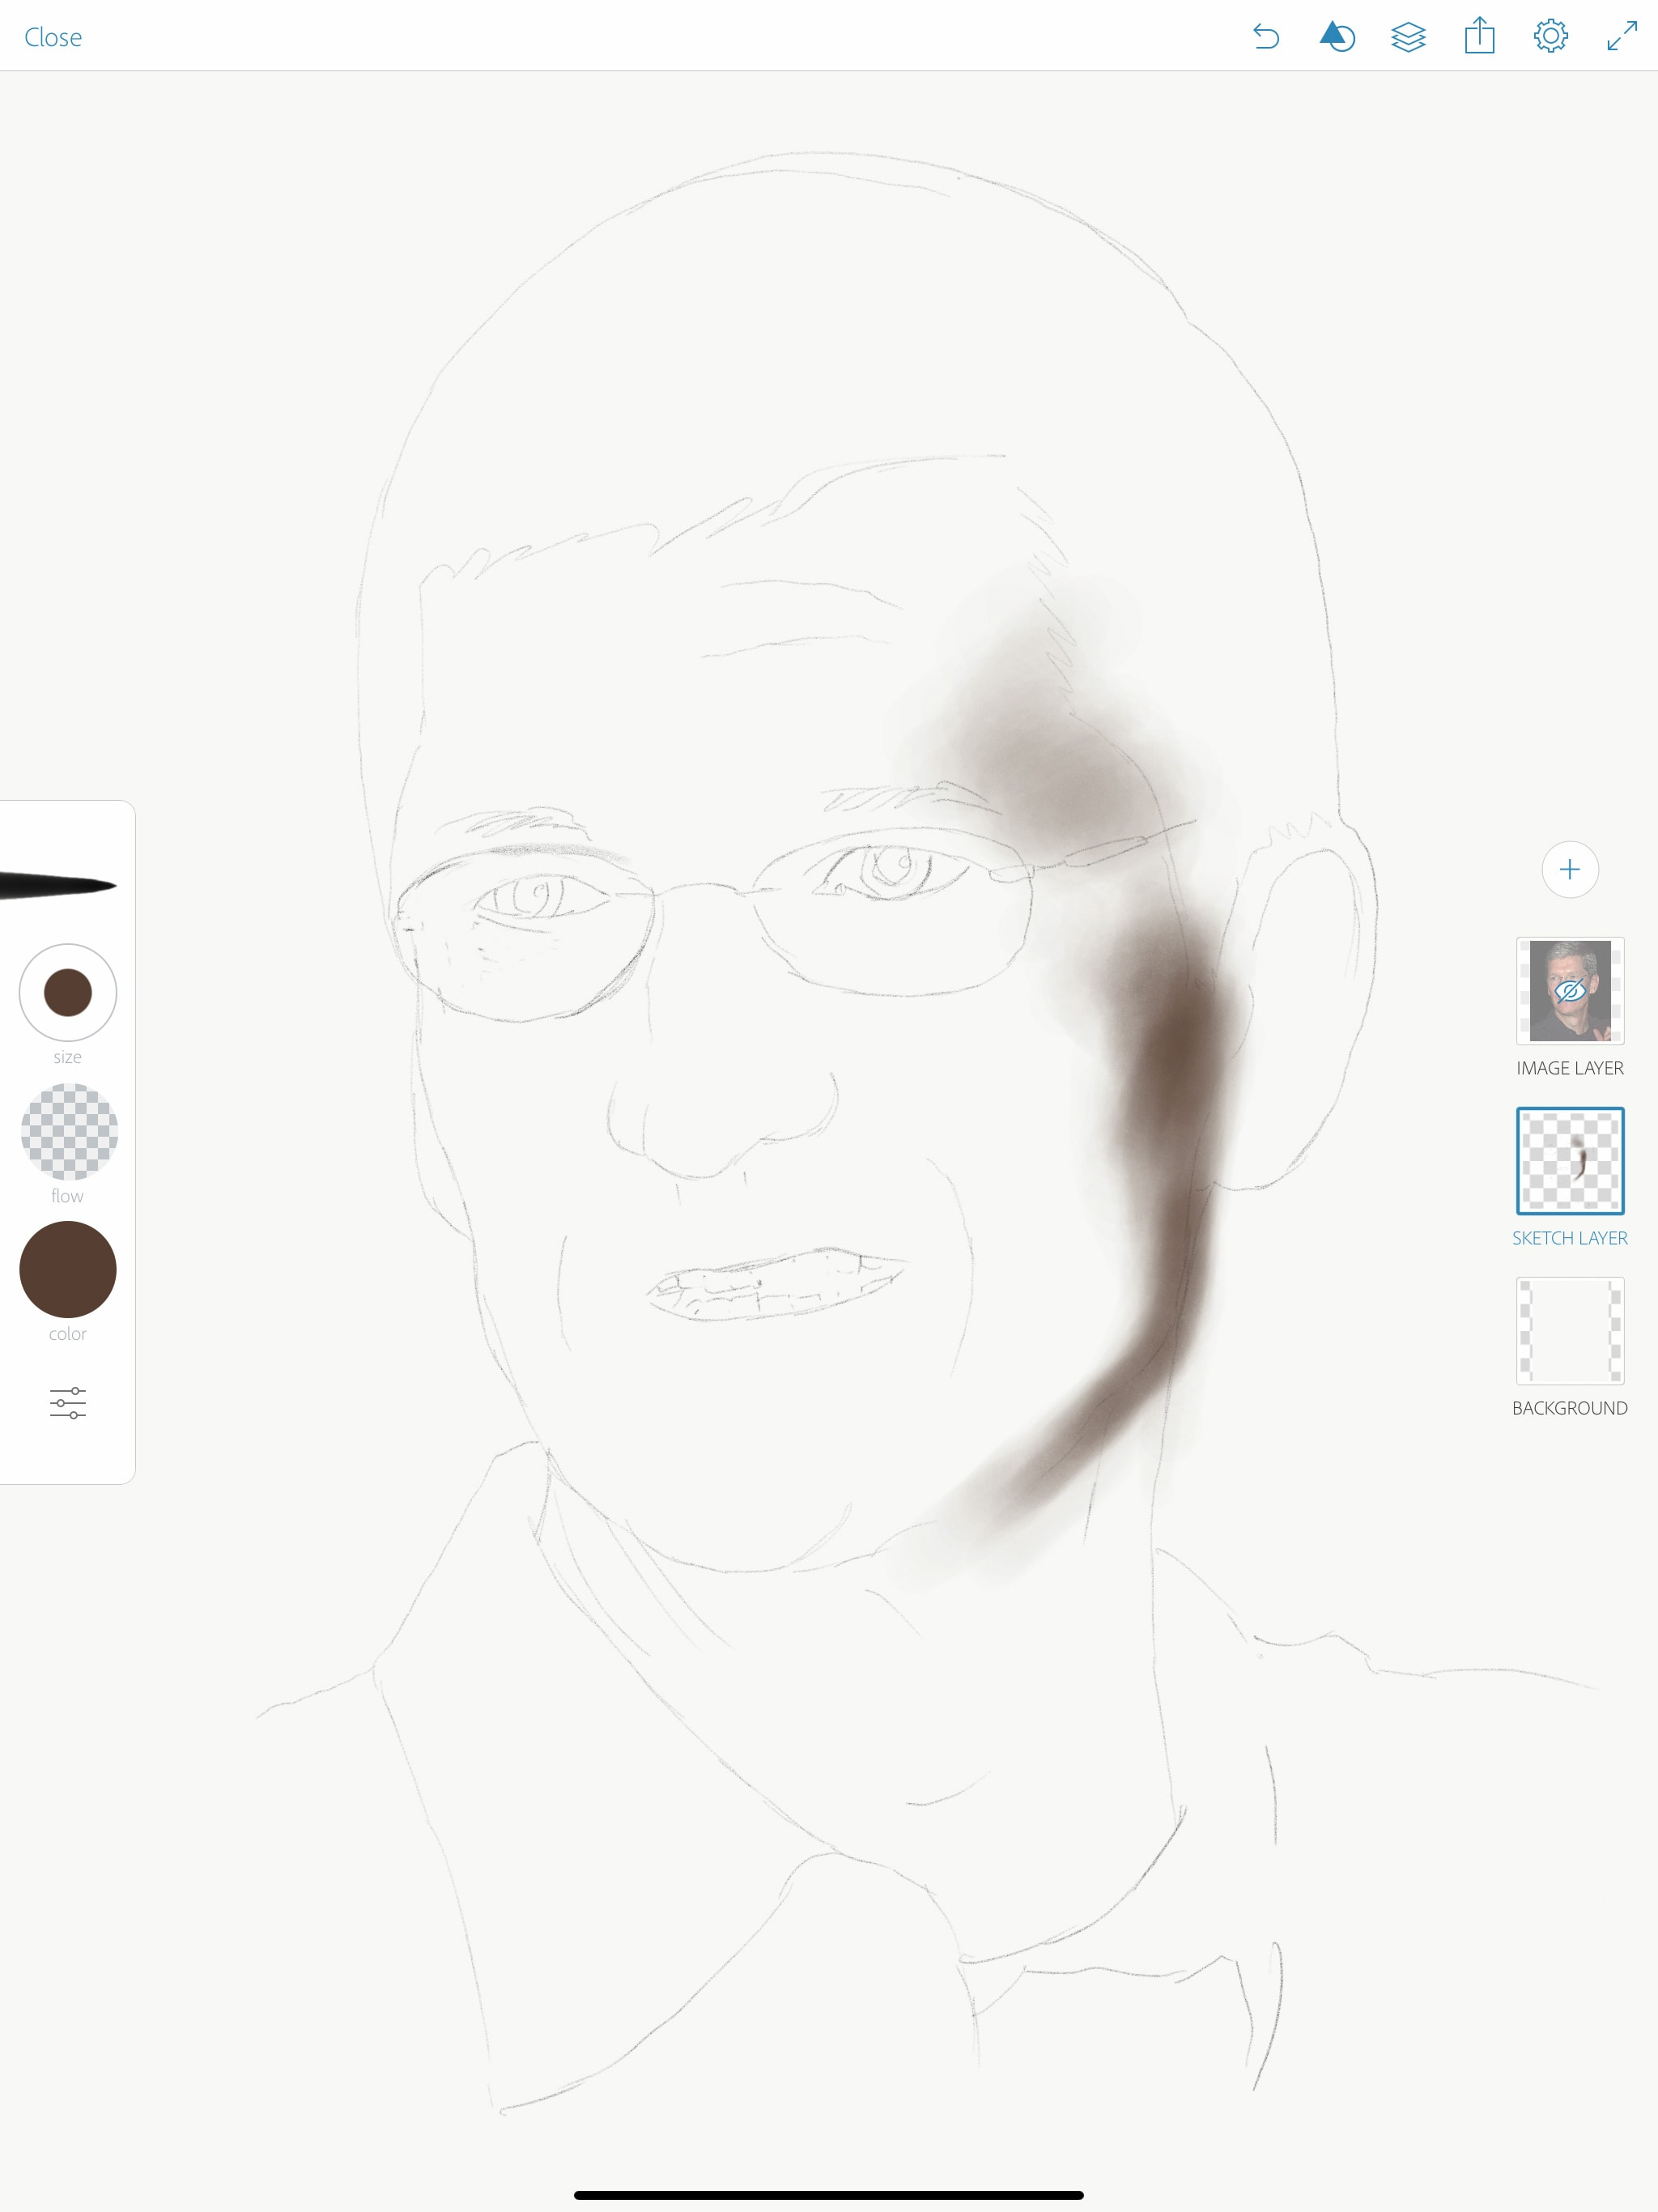 How to draw a portrait with apple pencil step 1 trace an outline